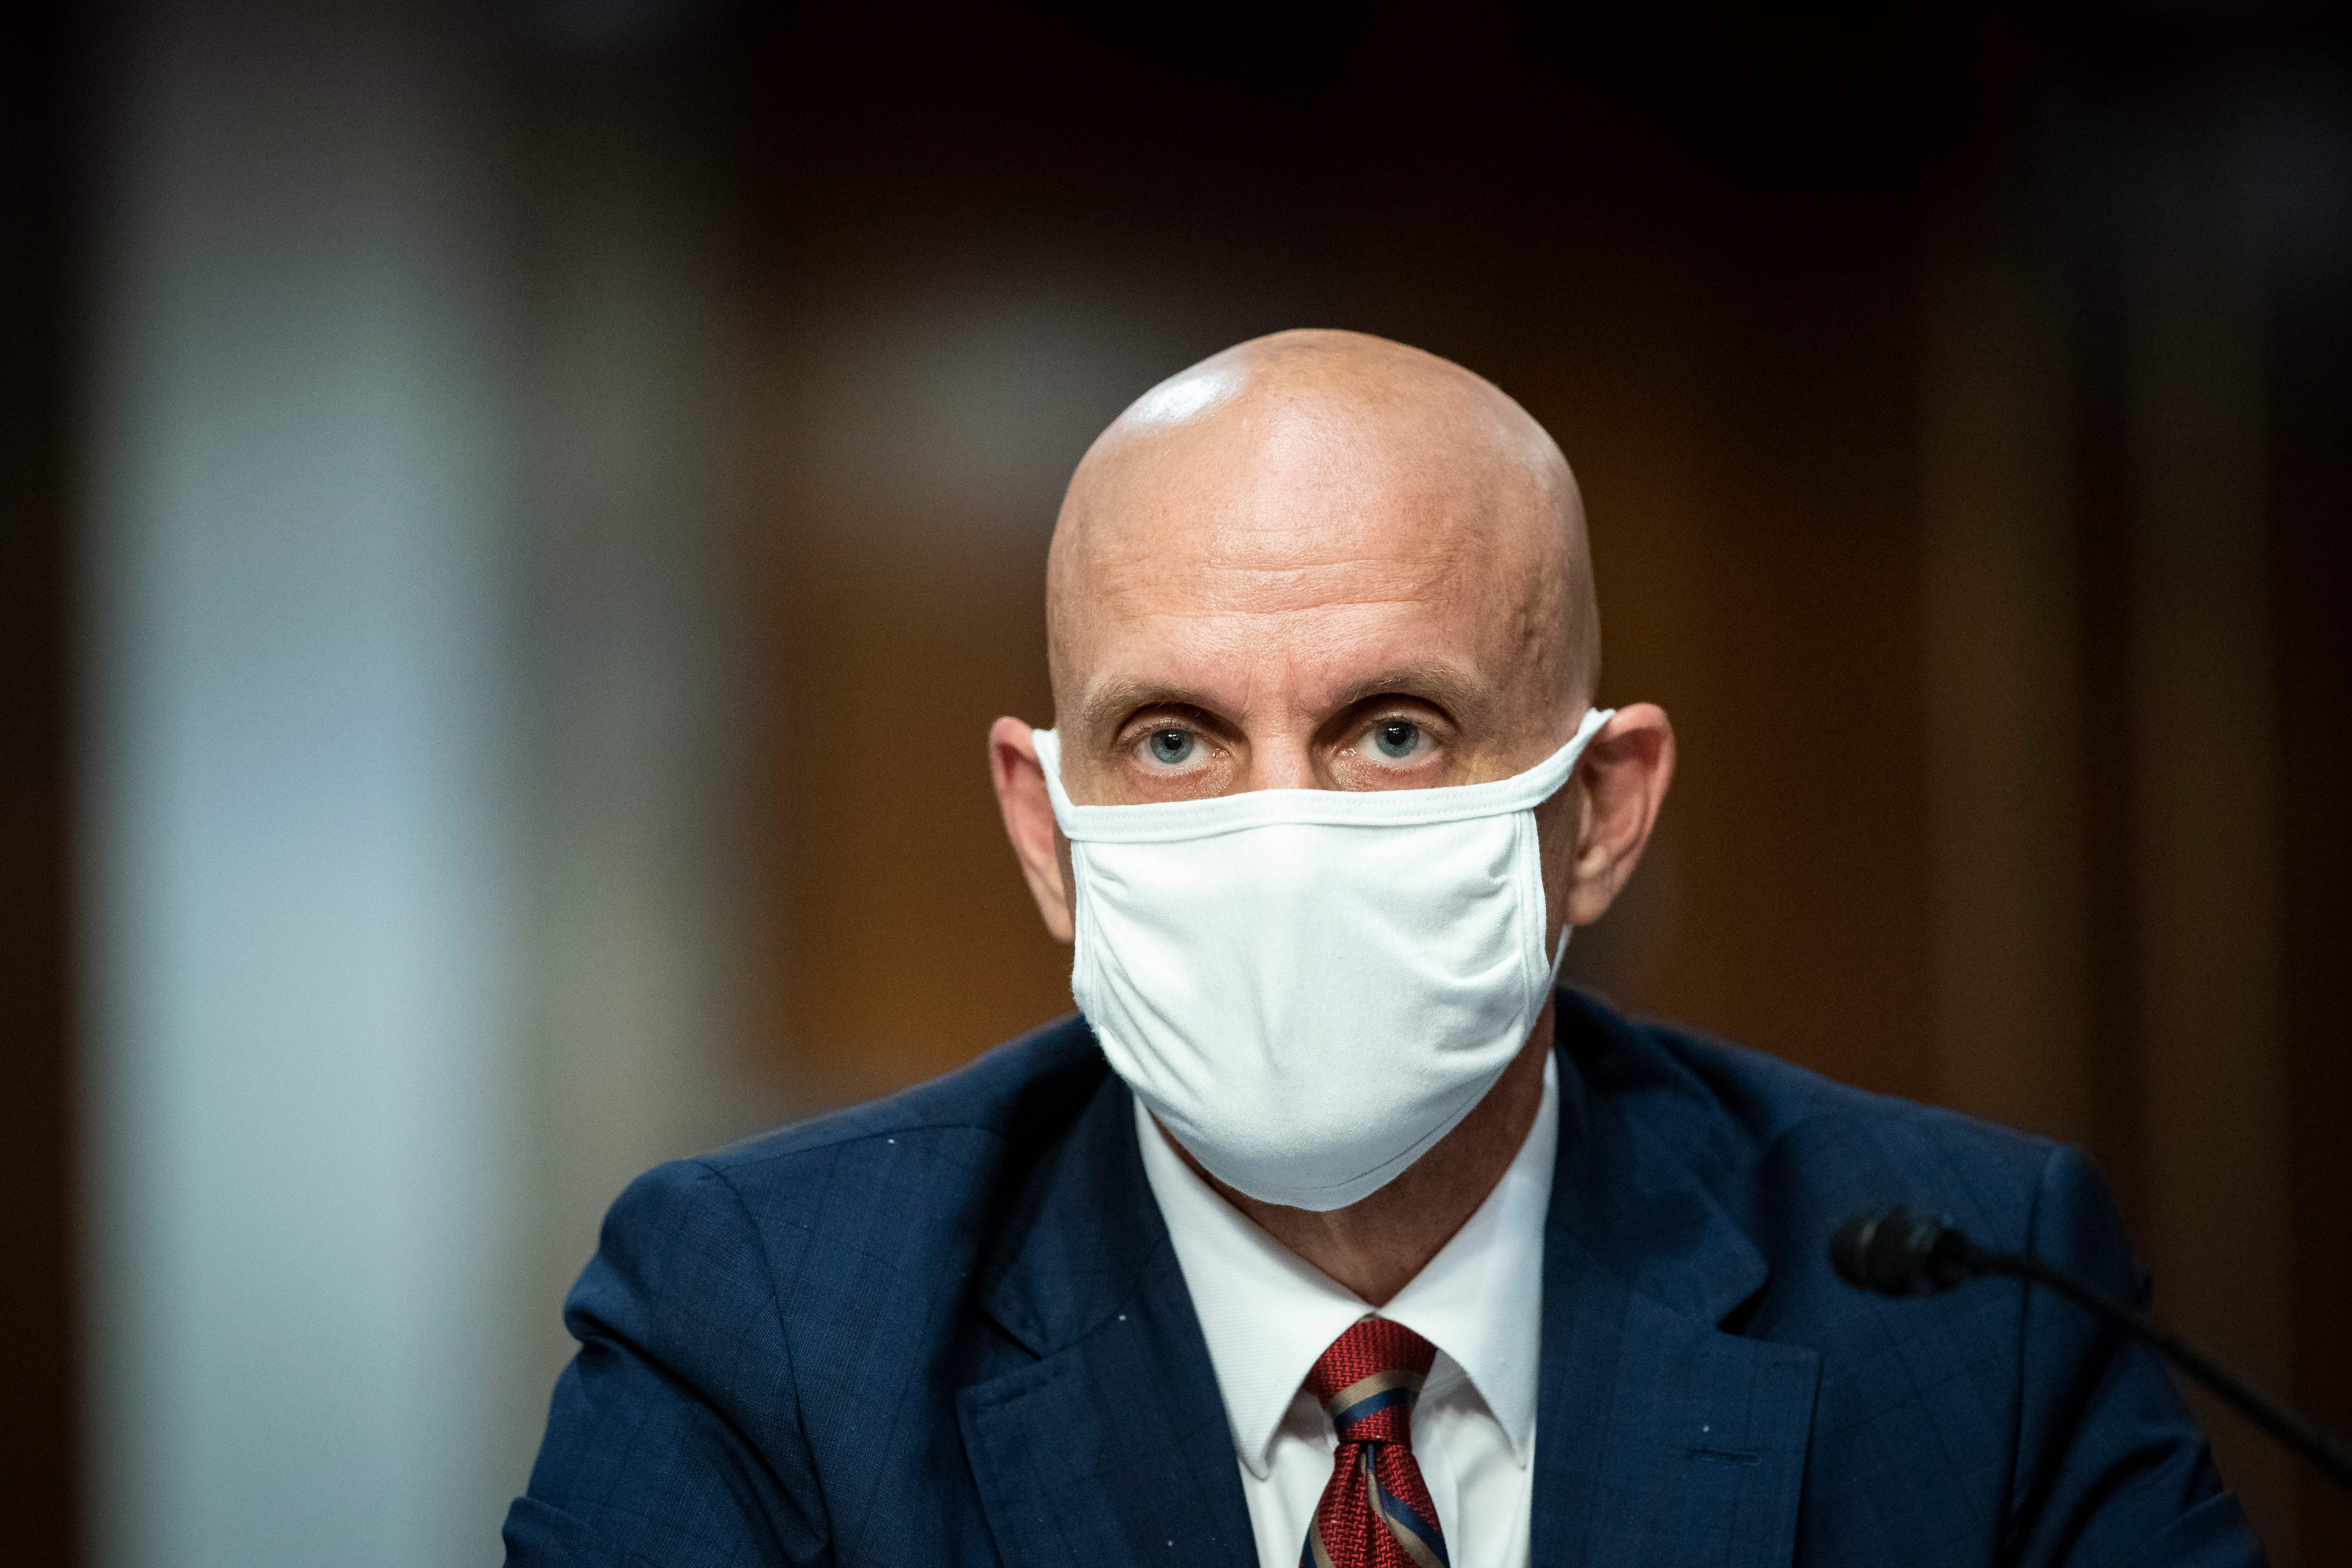 Stephen Hahn, commissioner of food and drugs at the US Food and Drug Administration (FDA), wears a protective covering during a Senate Health, Education, Labor and Pensions Committee hearing in Washington, D.C., on June 30.